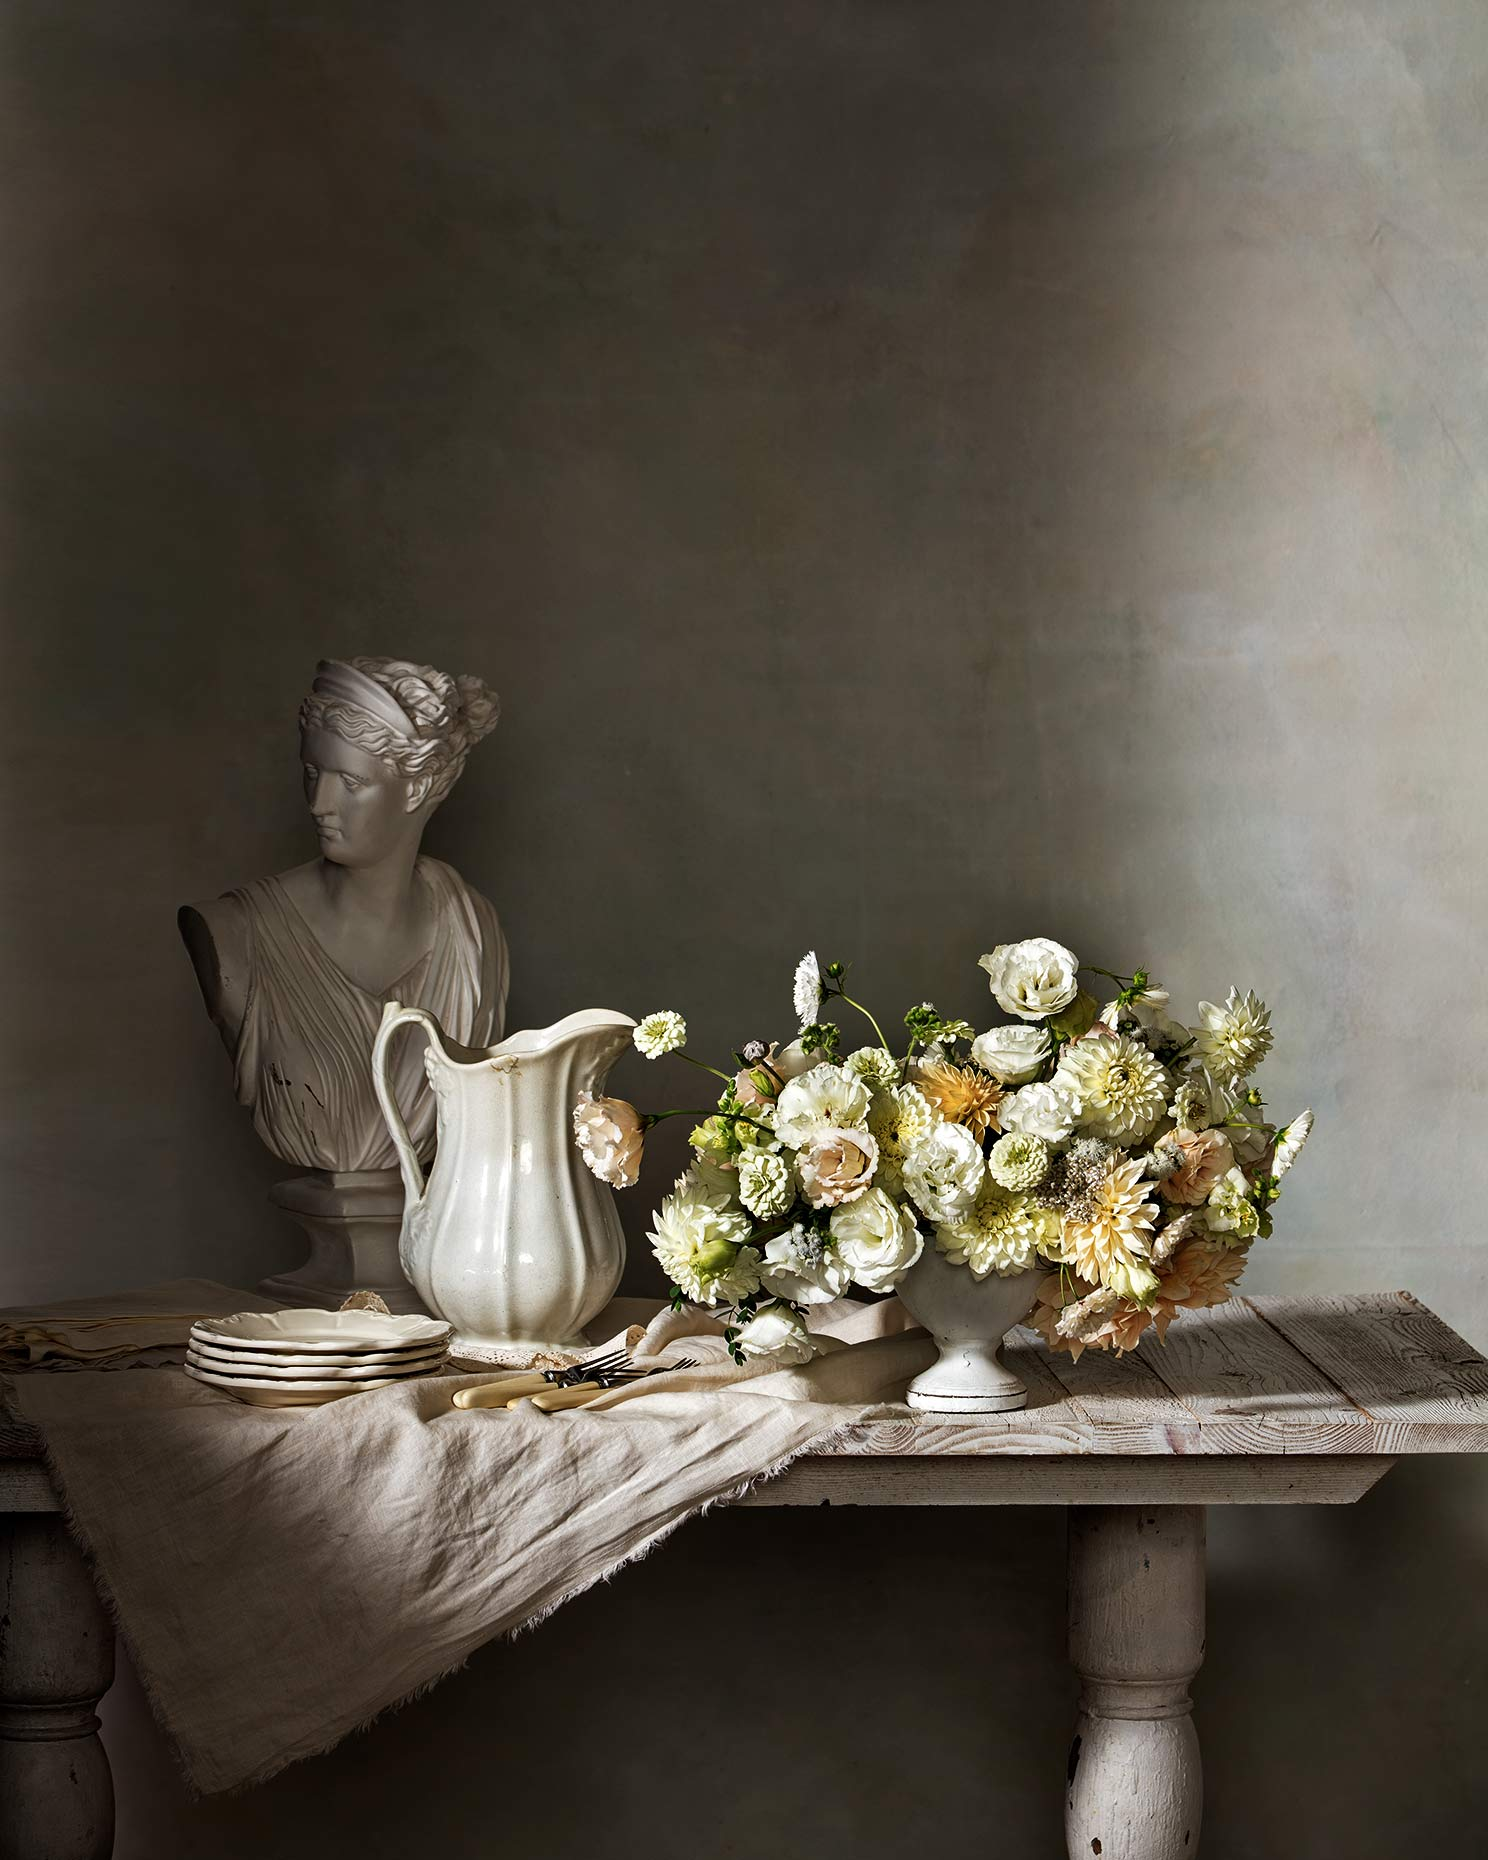 flowers and bust on a table.